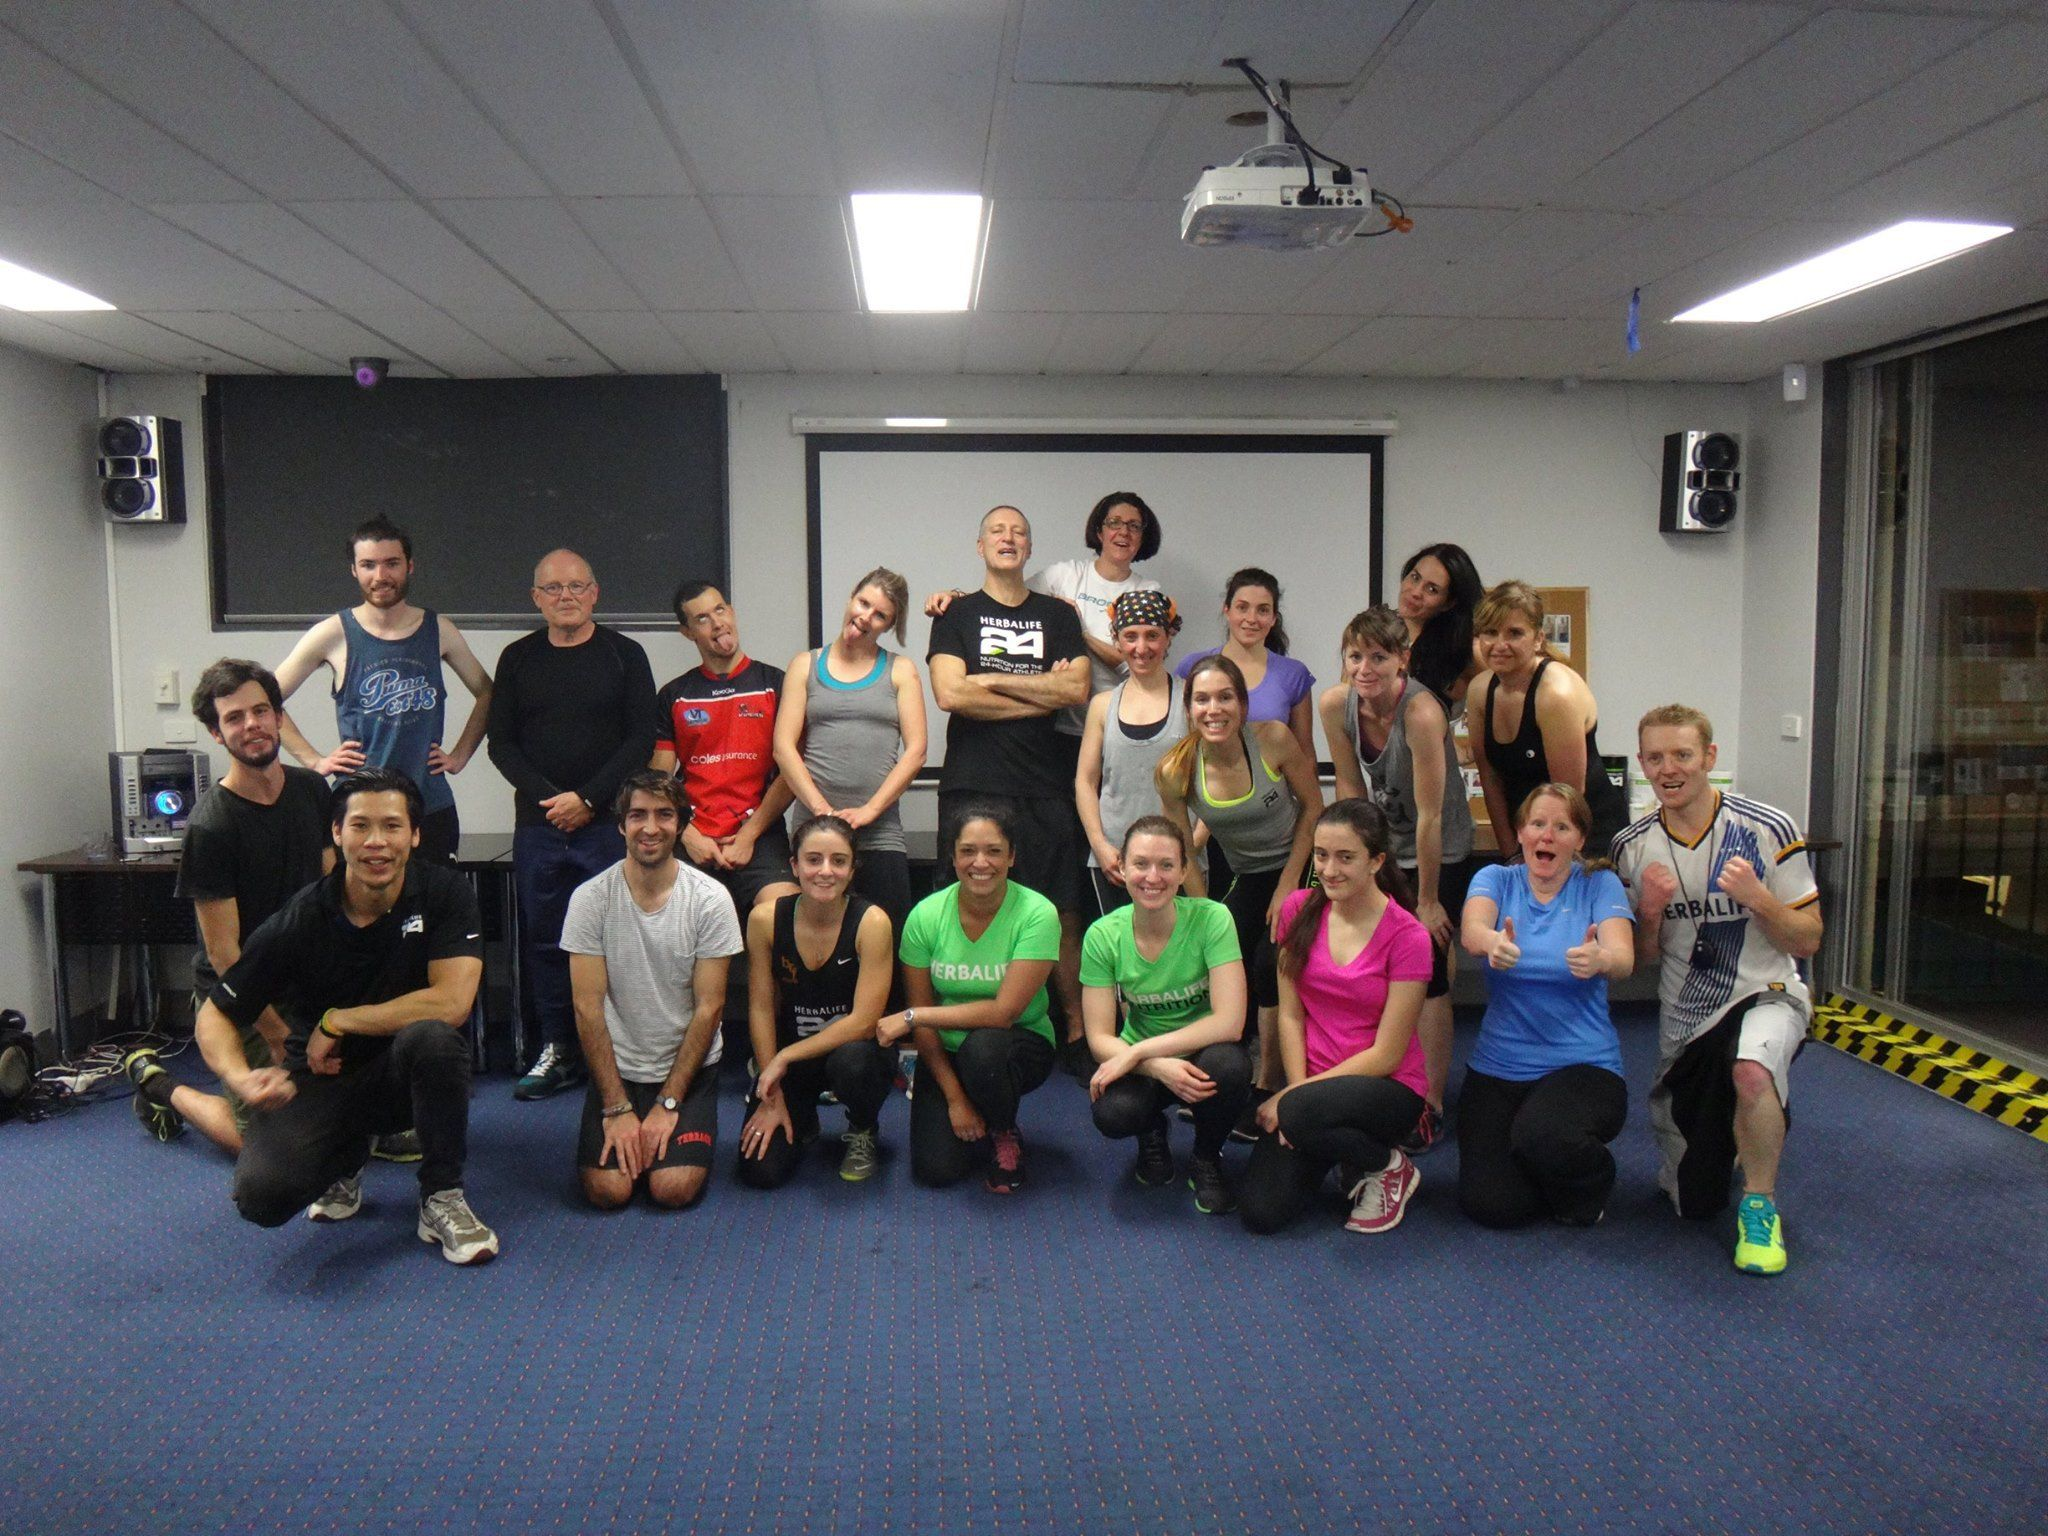 Fun Free Thursday Group Workout Fitzroy Bowling And